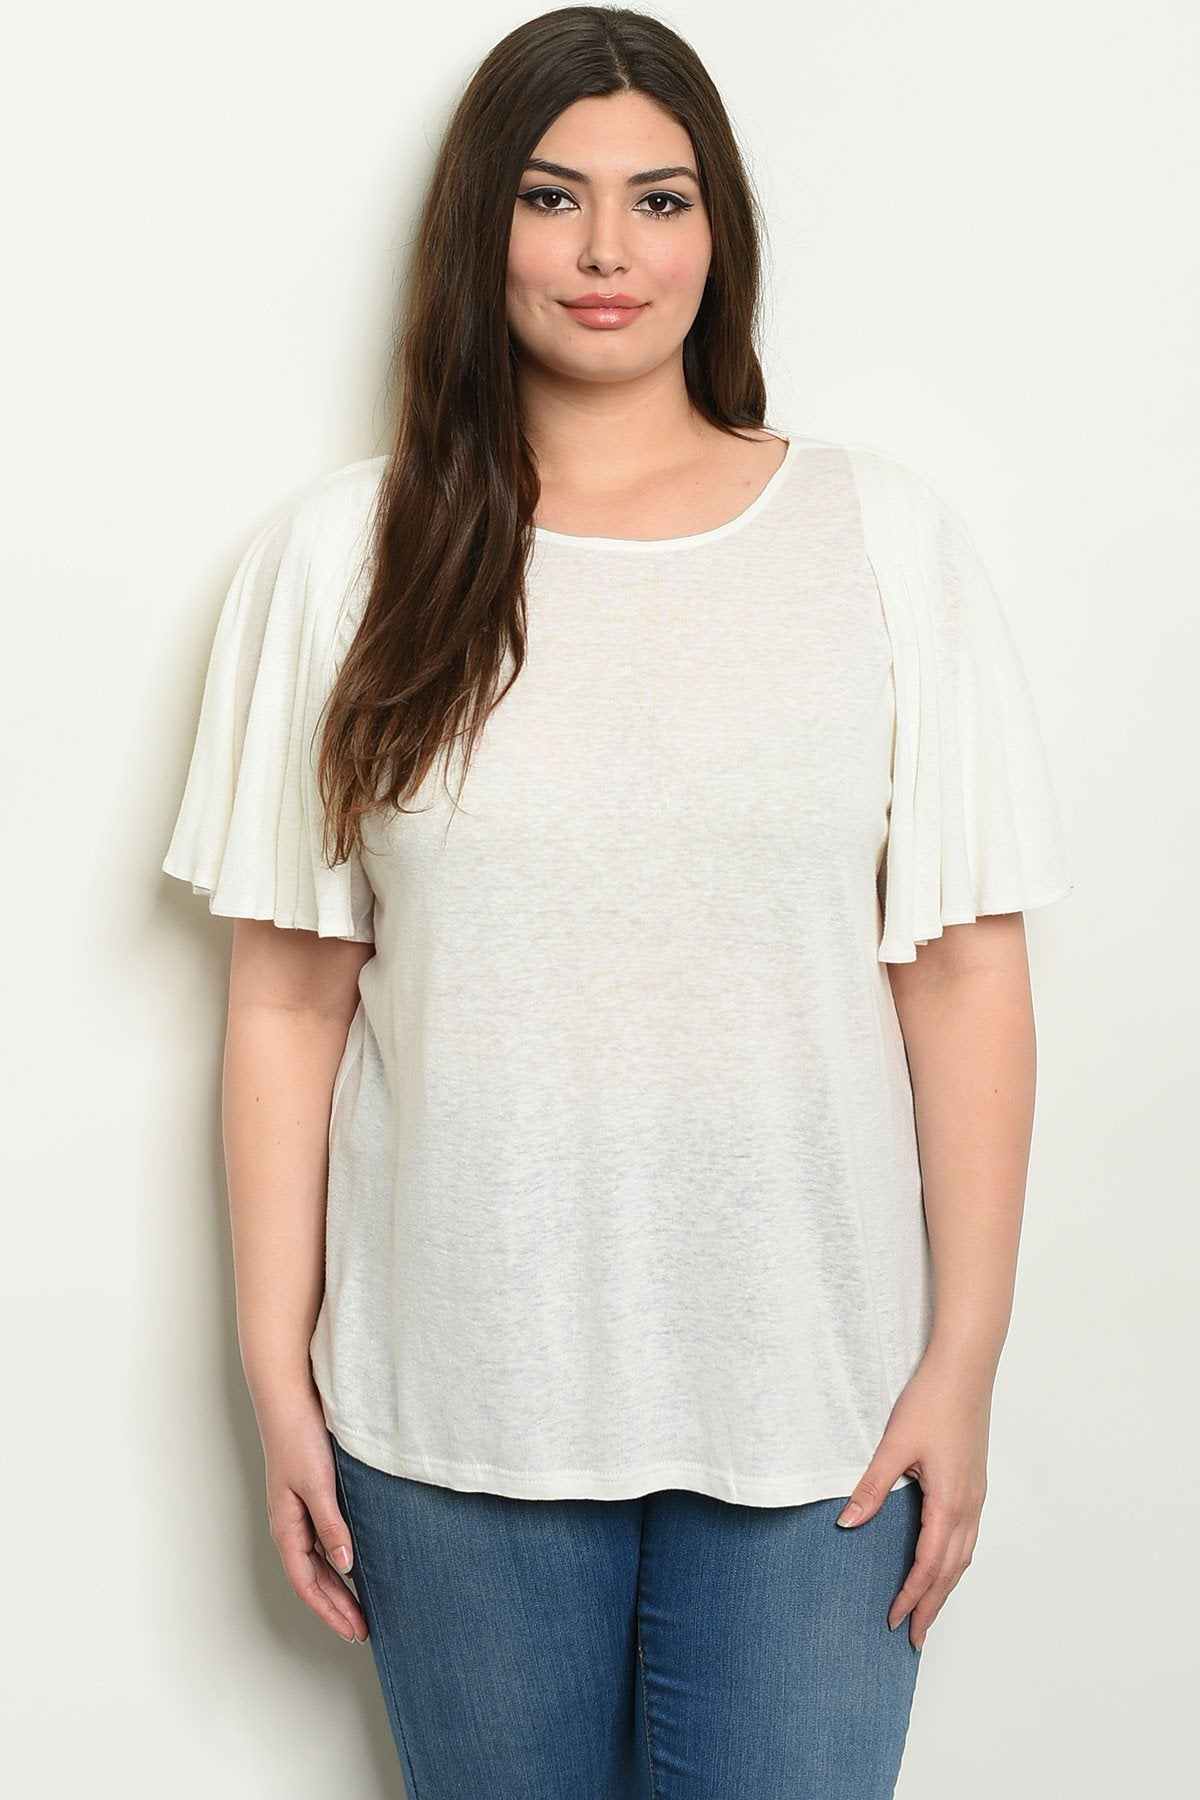 White Plus Size Top - Manifest Best Boutique